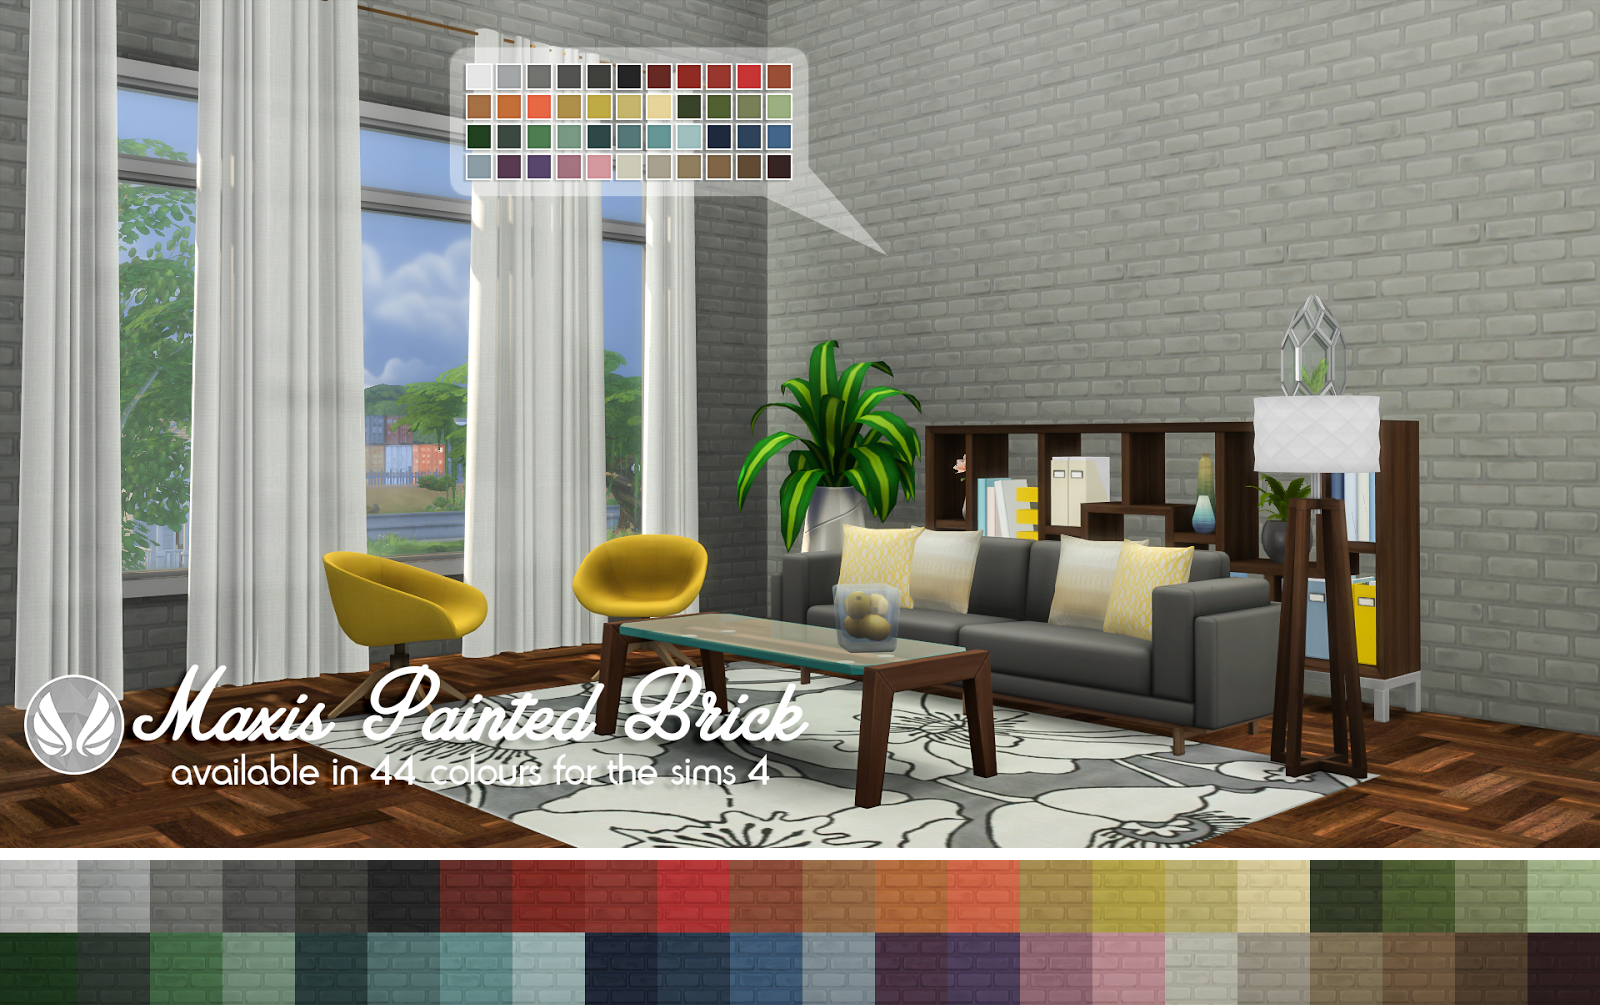 Maxis Painted Brick by Peacemaker IC